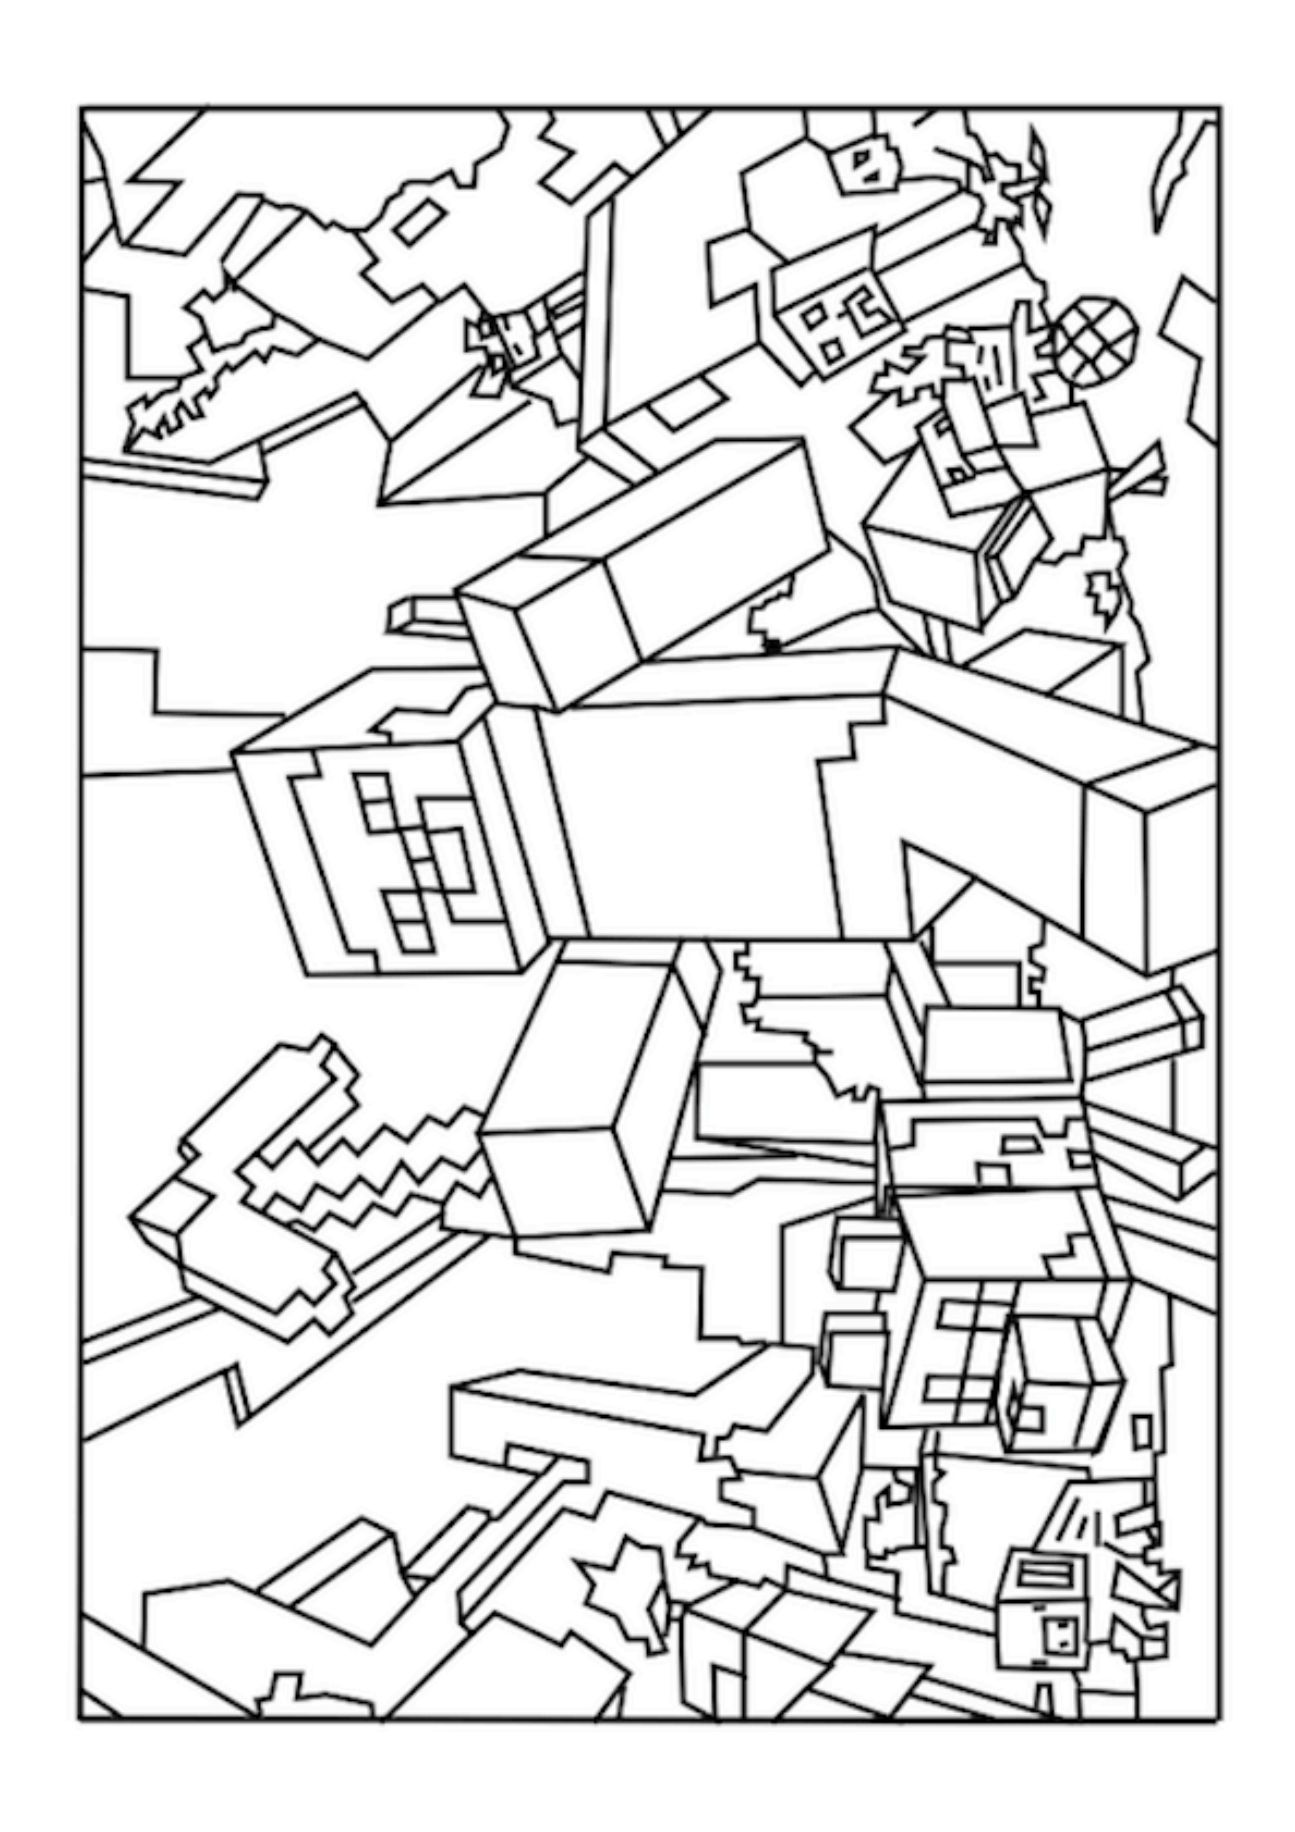 Minecraft Dantdm Coloring Pages Printable Coloring Pages Printable Minecraft Coloring Pages